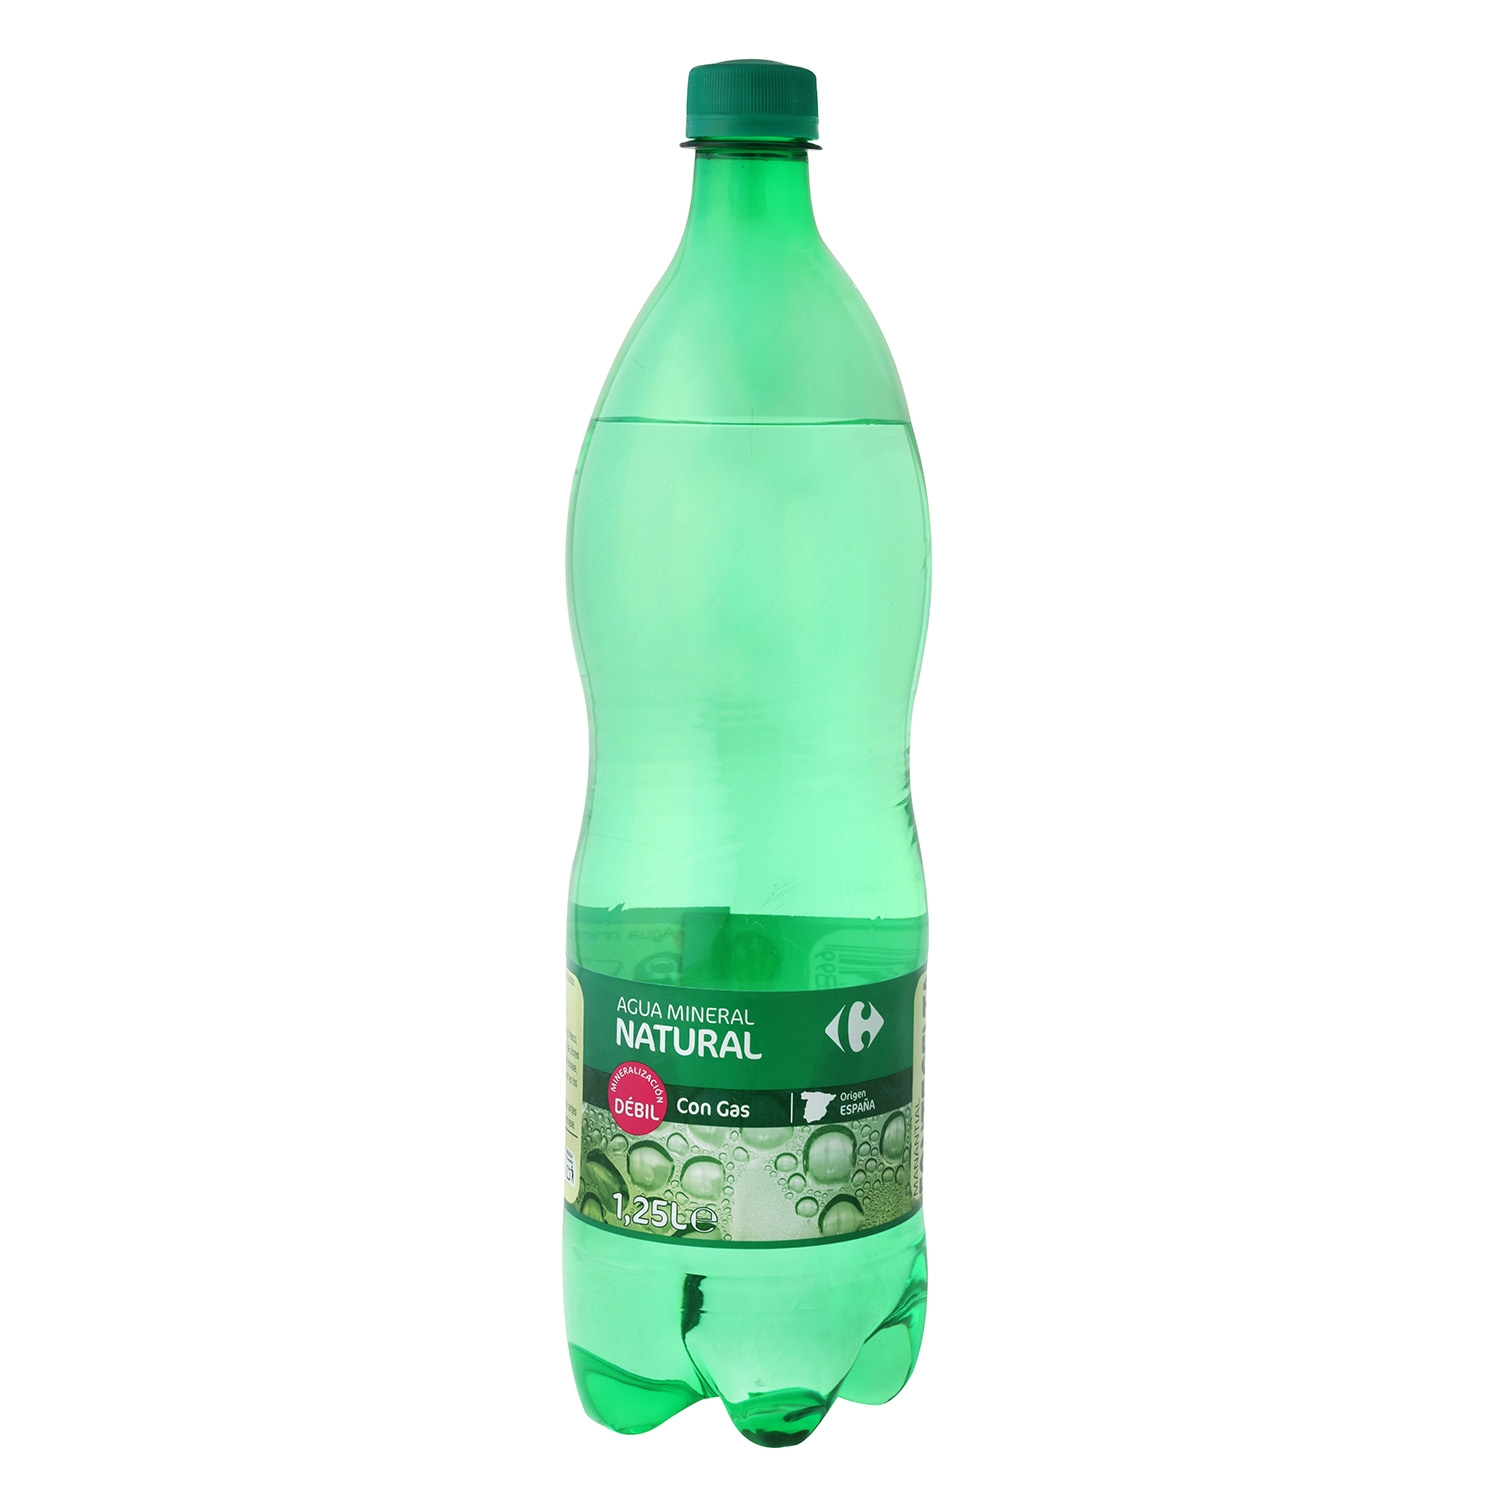 Agua mineral Carrefour natural con gas 1,25 l.